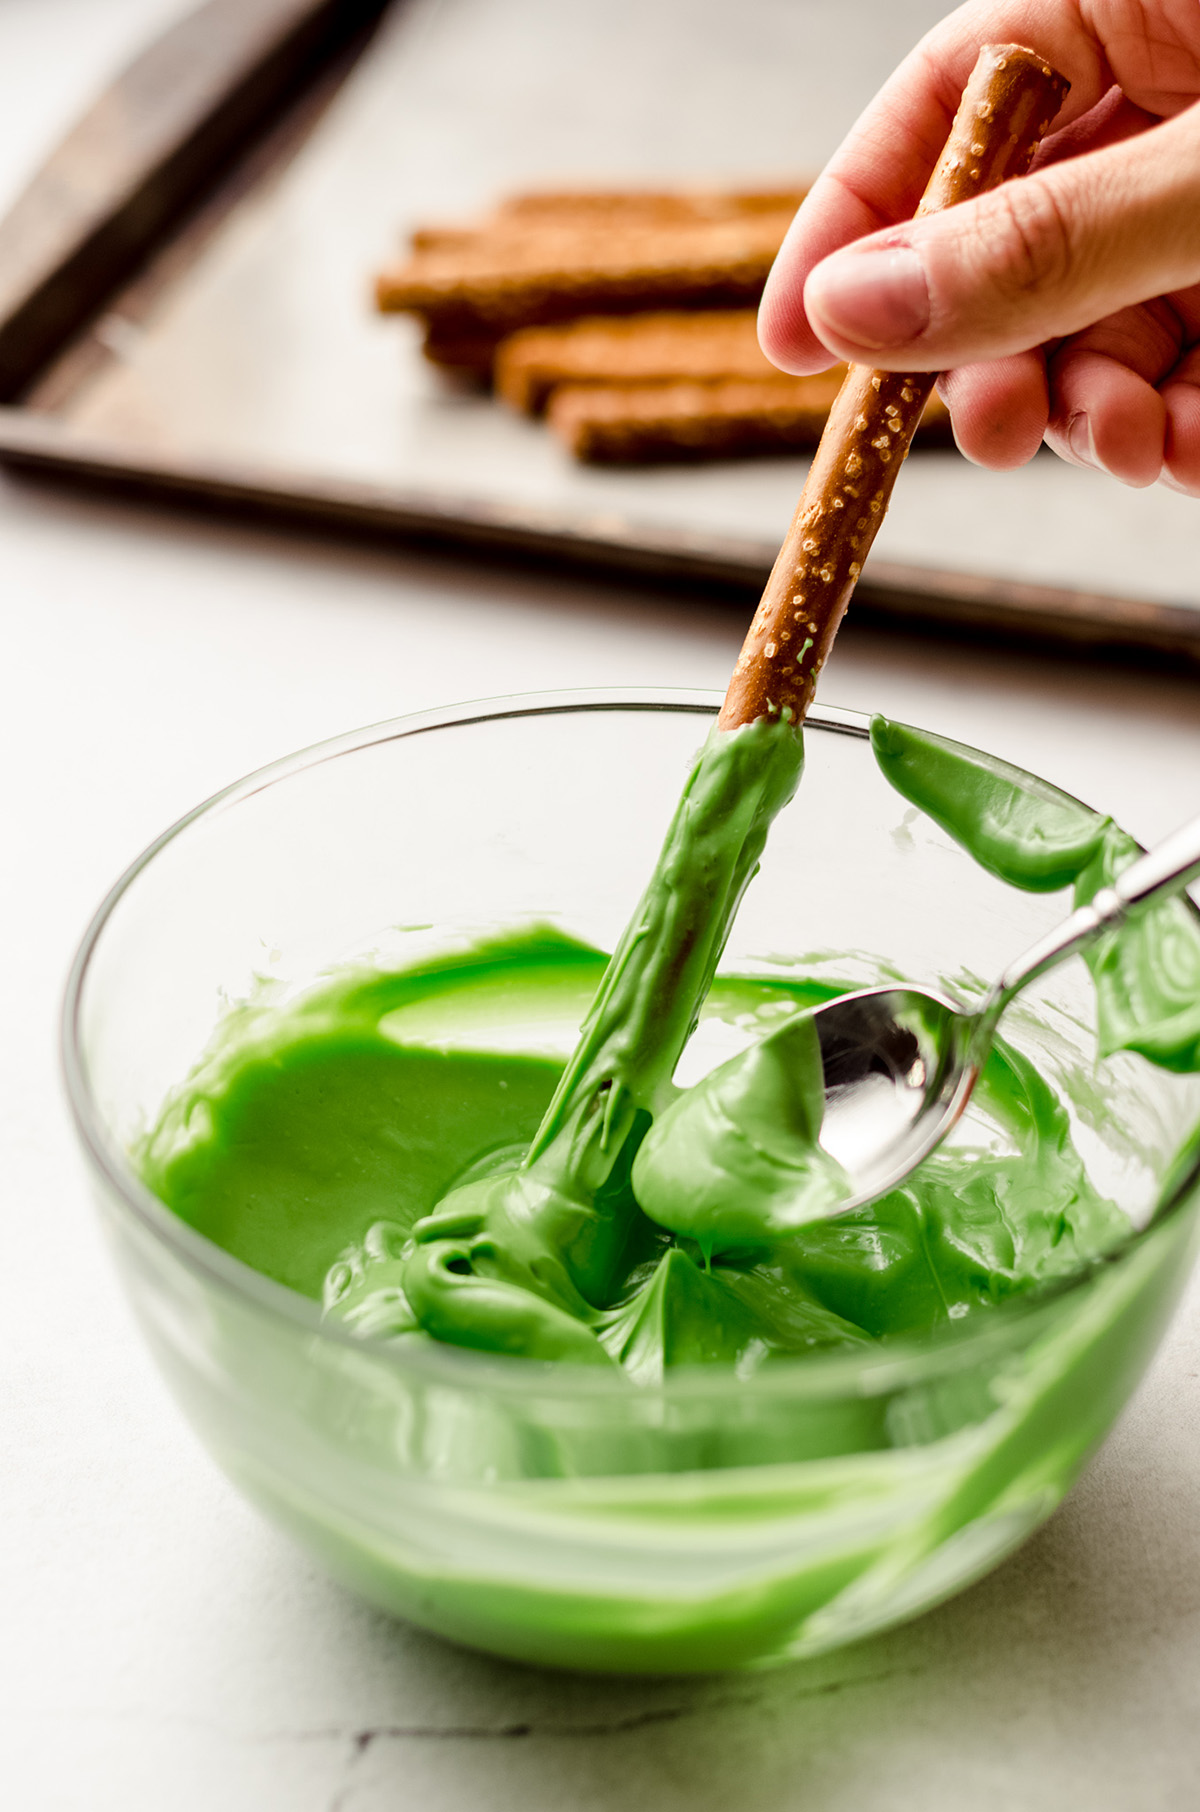 dipping a pretzel rod into green candy coating to make witch finger pretzels